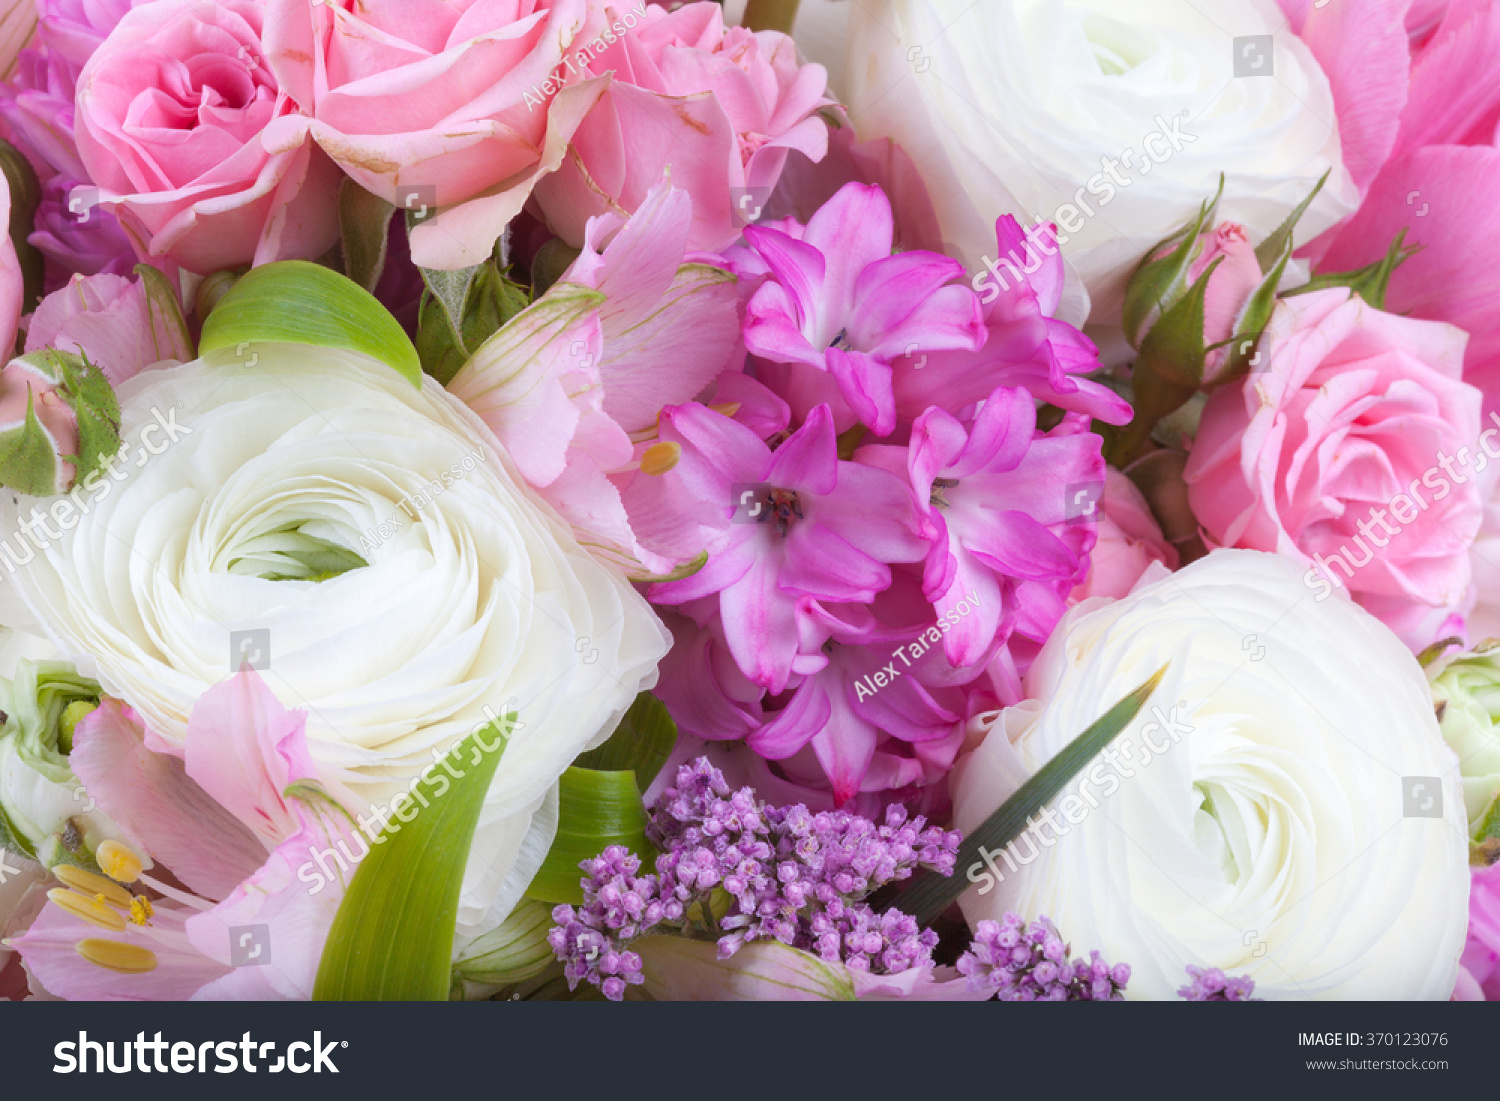 Amazing flower bouquet arrangement close up in pastel colors ez canvas id 370123076 izmirmasajfo